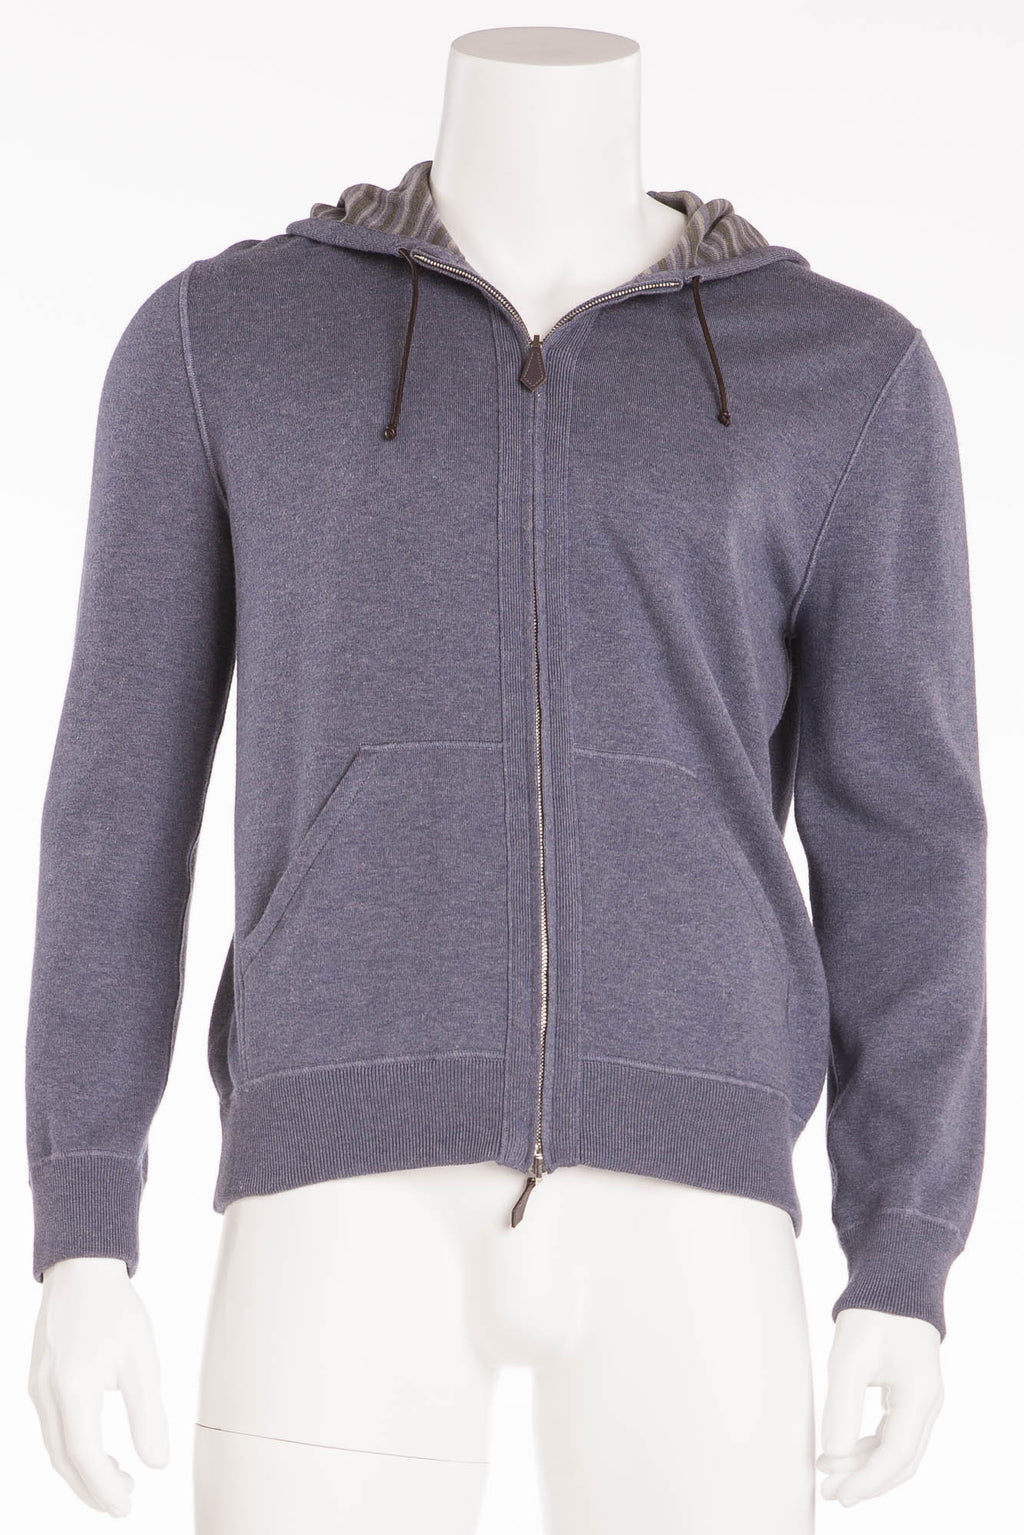 Authentic Hermes - Grey/Blue Zip Up Hoodie - L